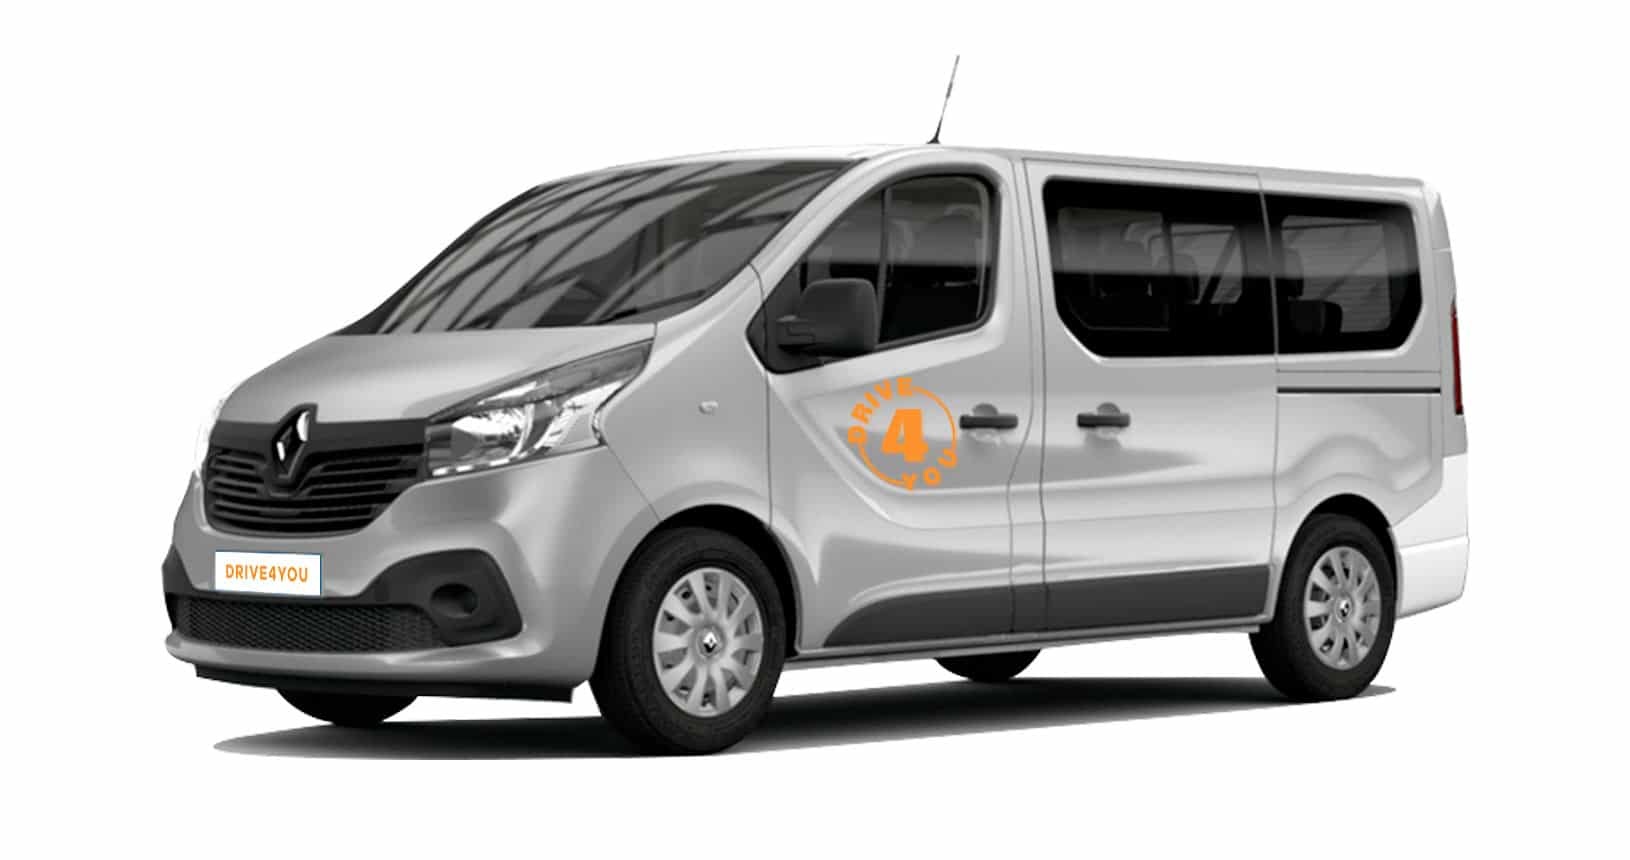 Renault trafic handicapé drive4you